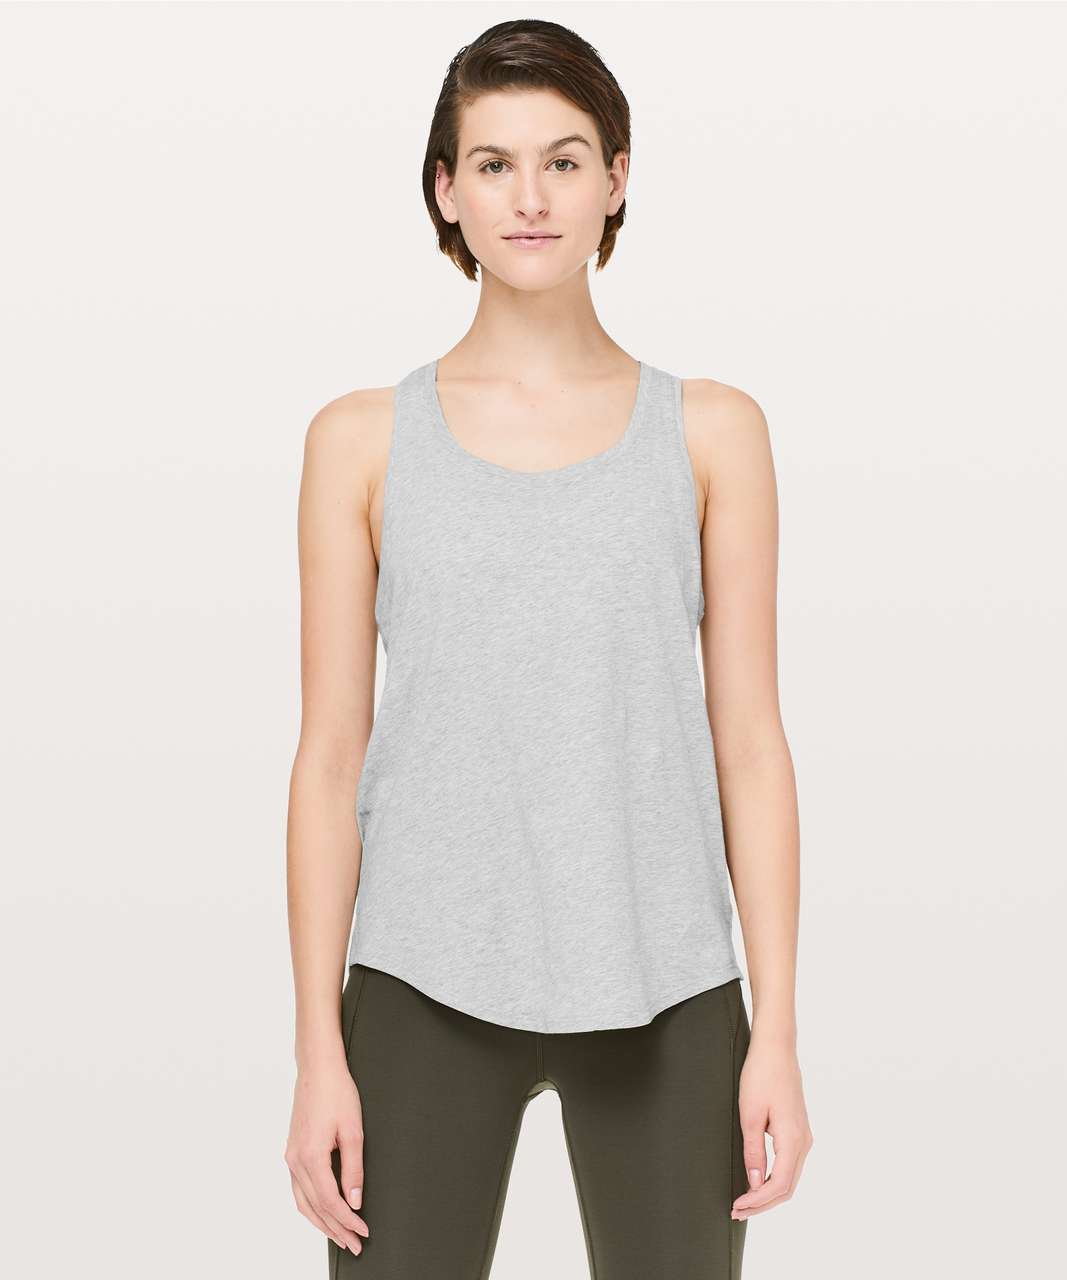 Lululemon Love Tank *Pleated - Heathered Core Light Grey (First Release)